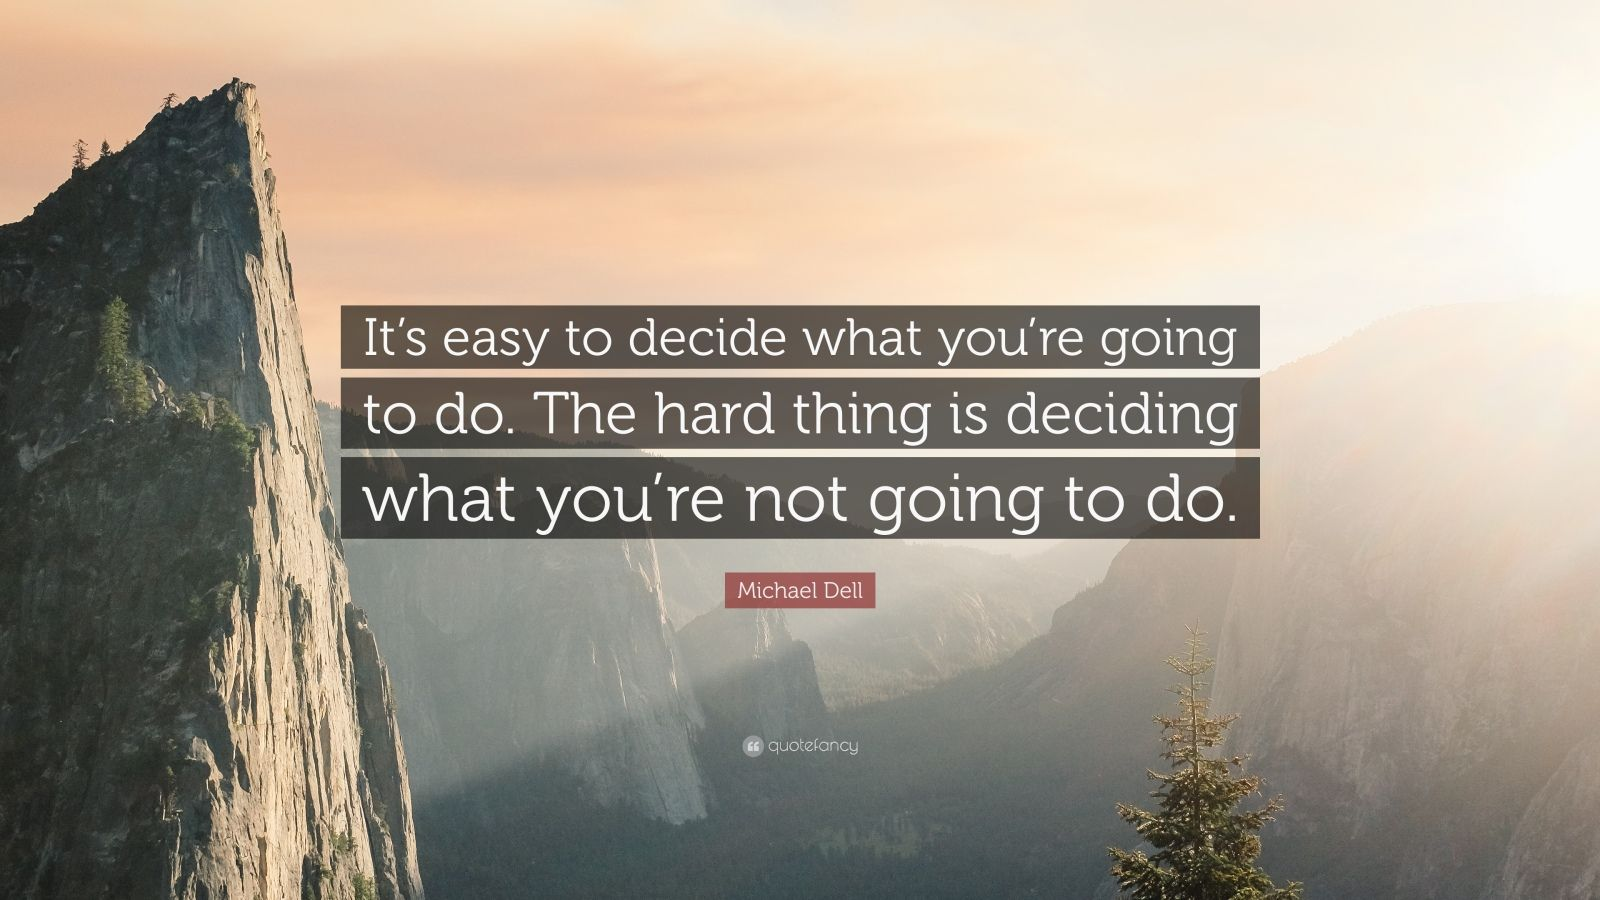 """Michael Dell Quote: """"It's easy to decide what you're going to do. The hard thing is deciding what you're not going to do."""""""